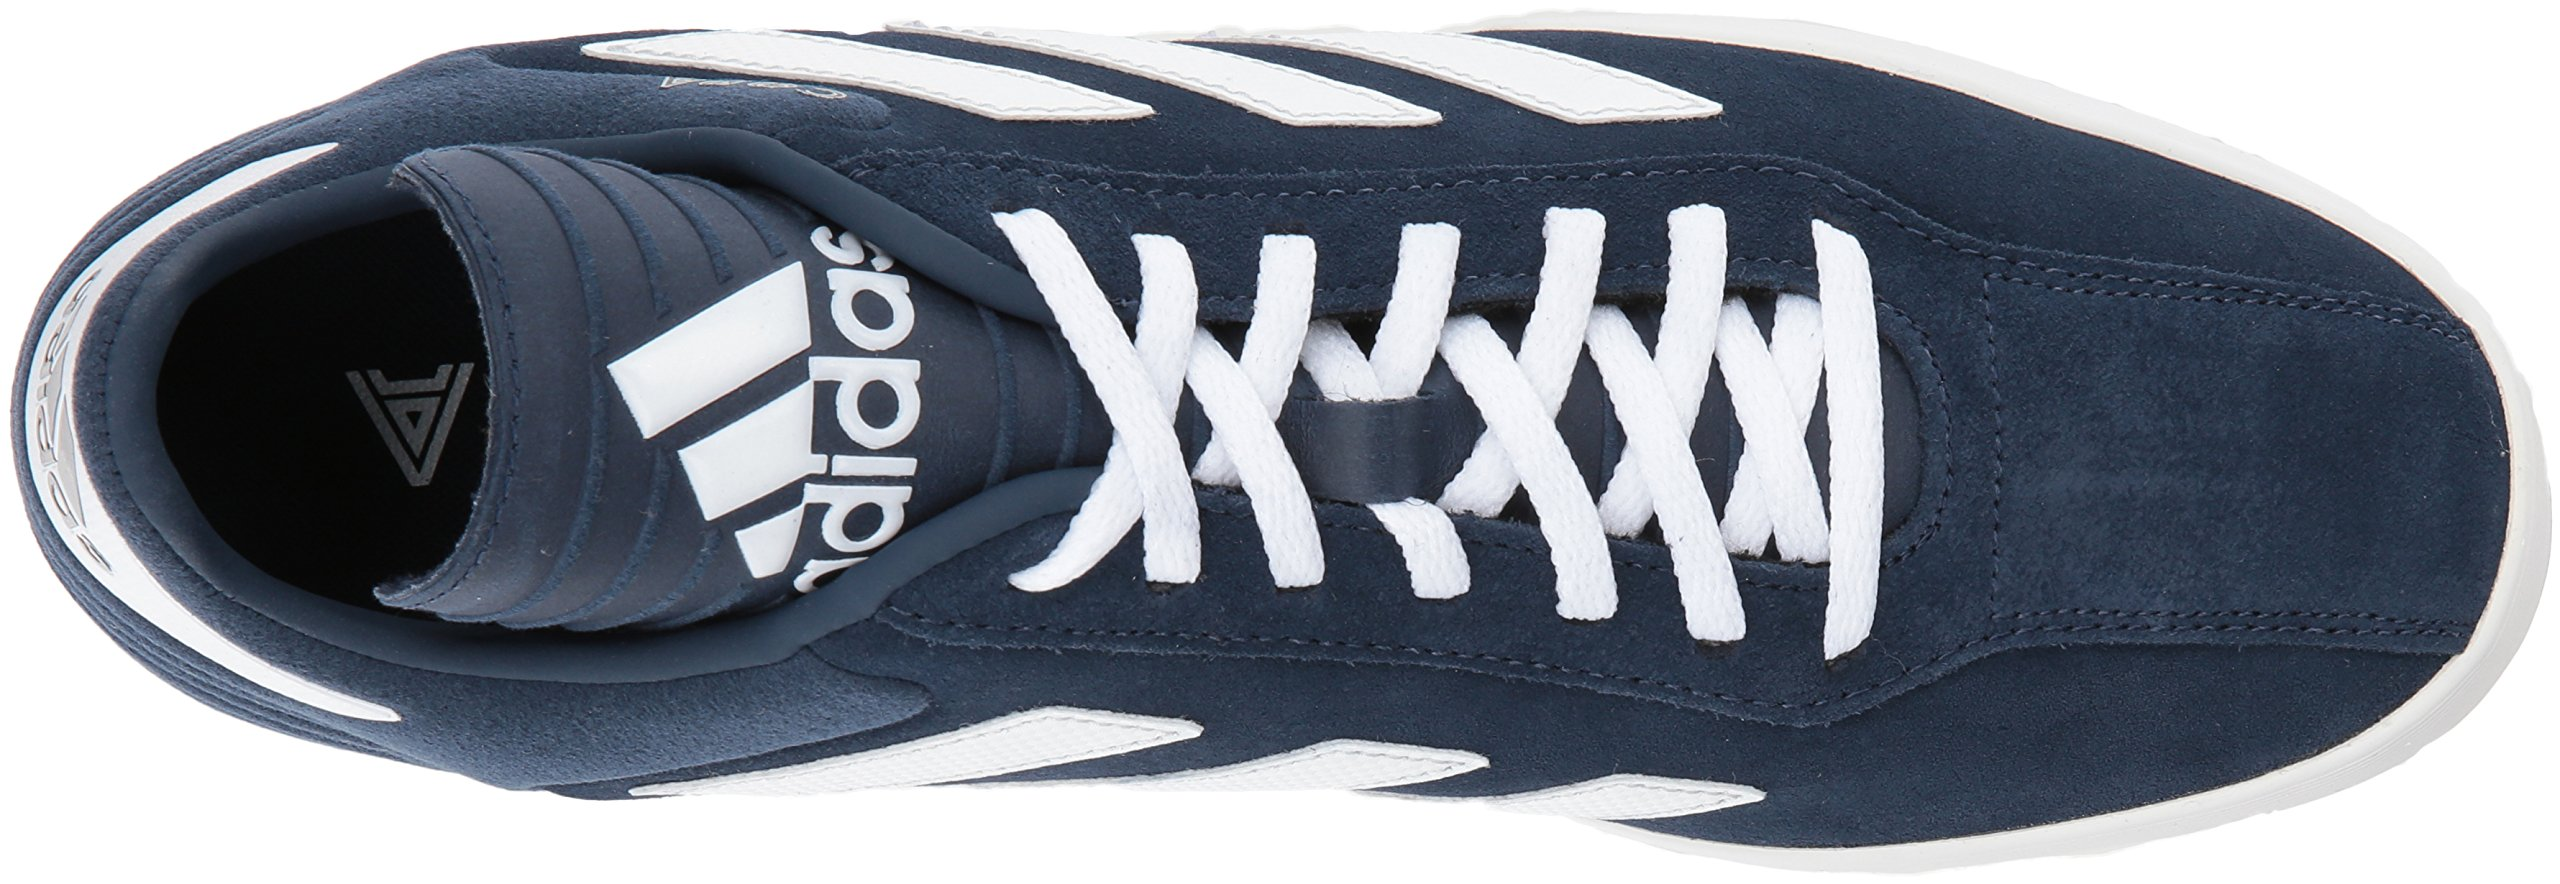 adidas Men's Copa Super Soccer Shoe White/Collegiate Navy, 7 M US by adidas (Image #8)